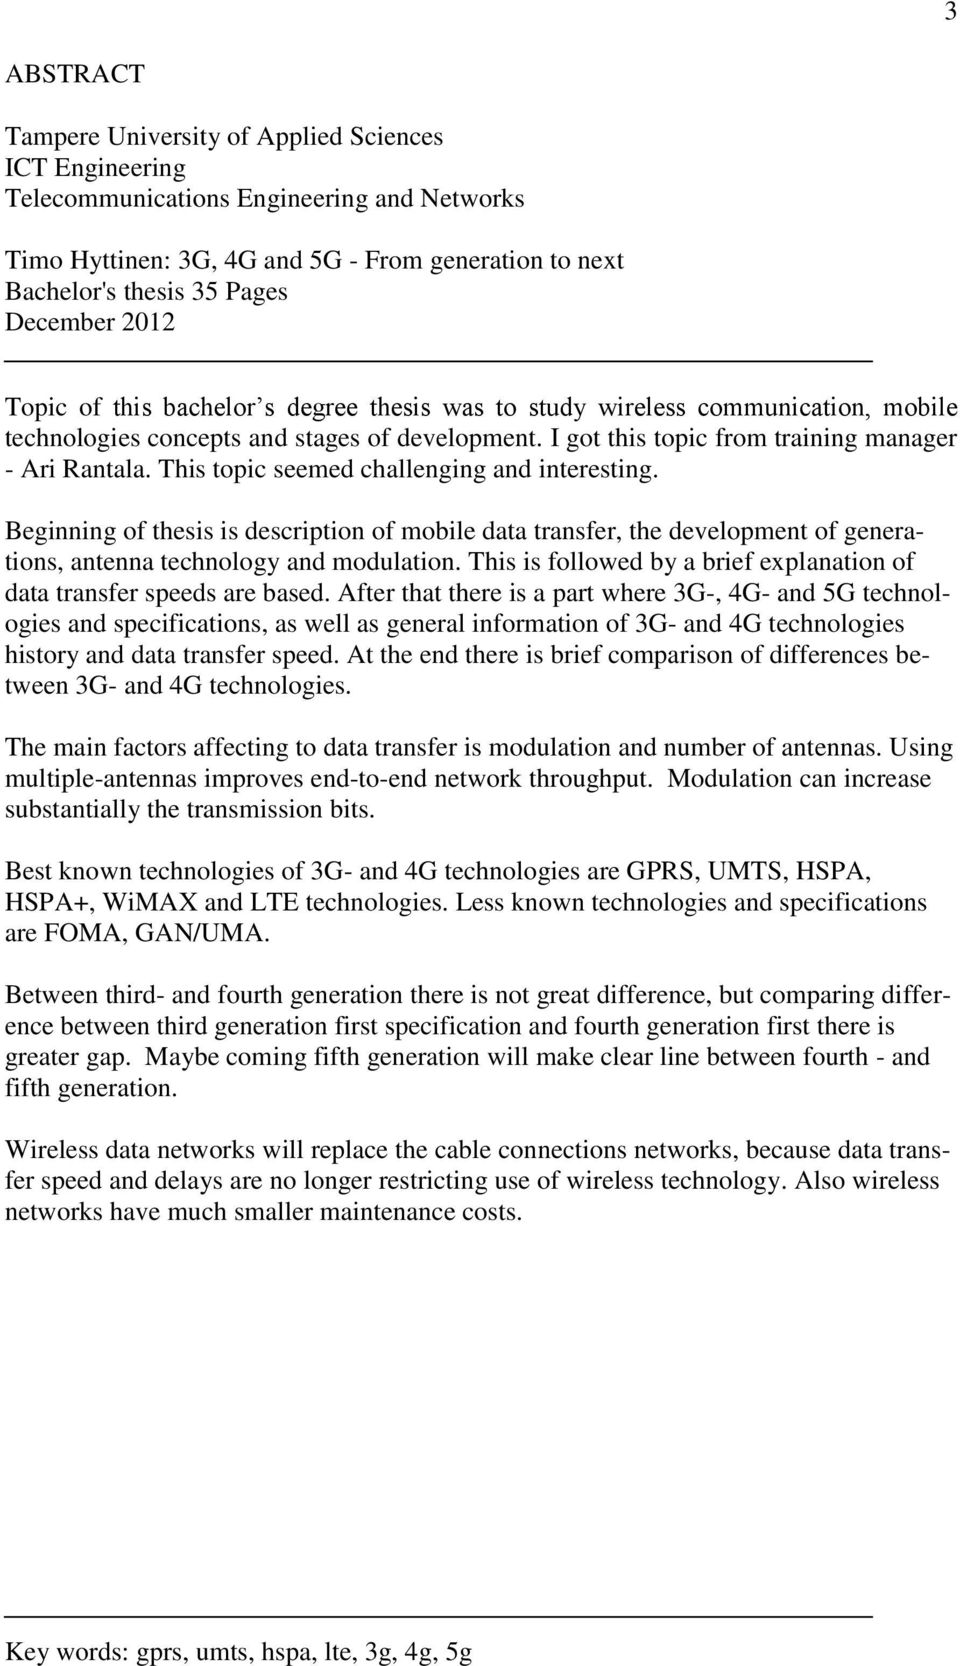 This topic seemed challenging and interesting. Beginning of thesis is description of mobile data transfer, the development of generations, antenna technology and modulation.